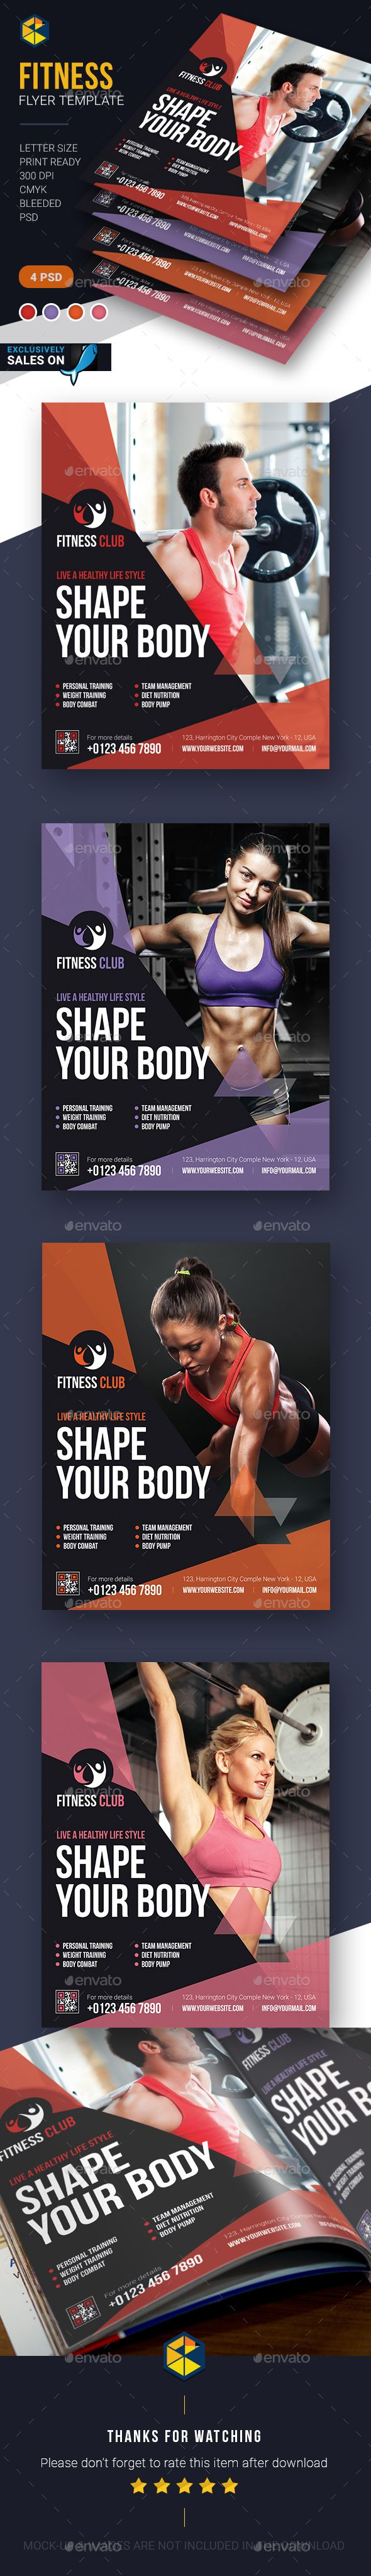 Fitness Flyer Template PSD #design Download: http://graphicriver.net/item/fitness-flyer-template/14327228?ref=ksioks